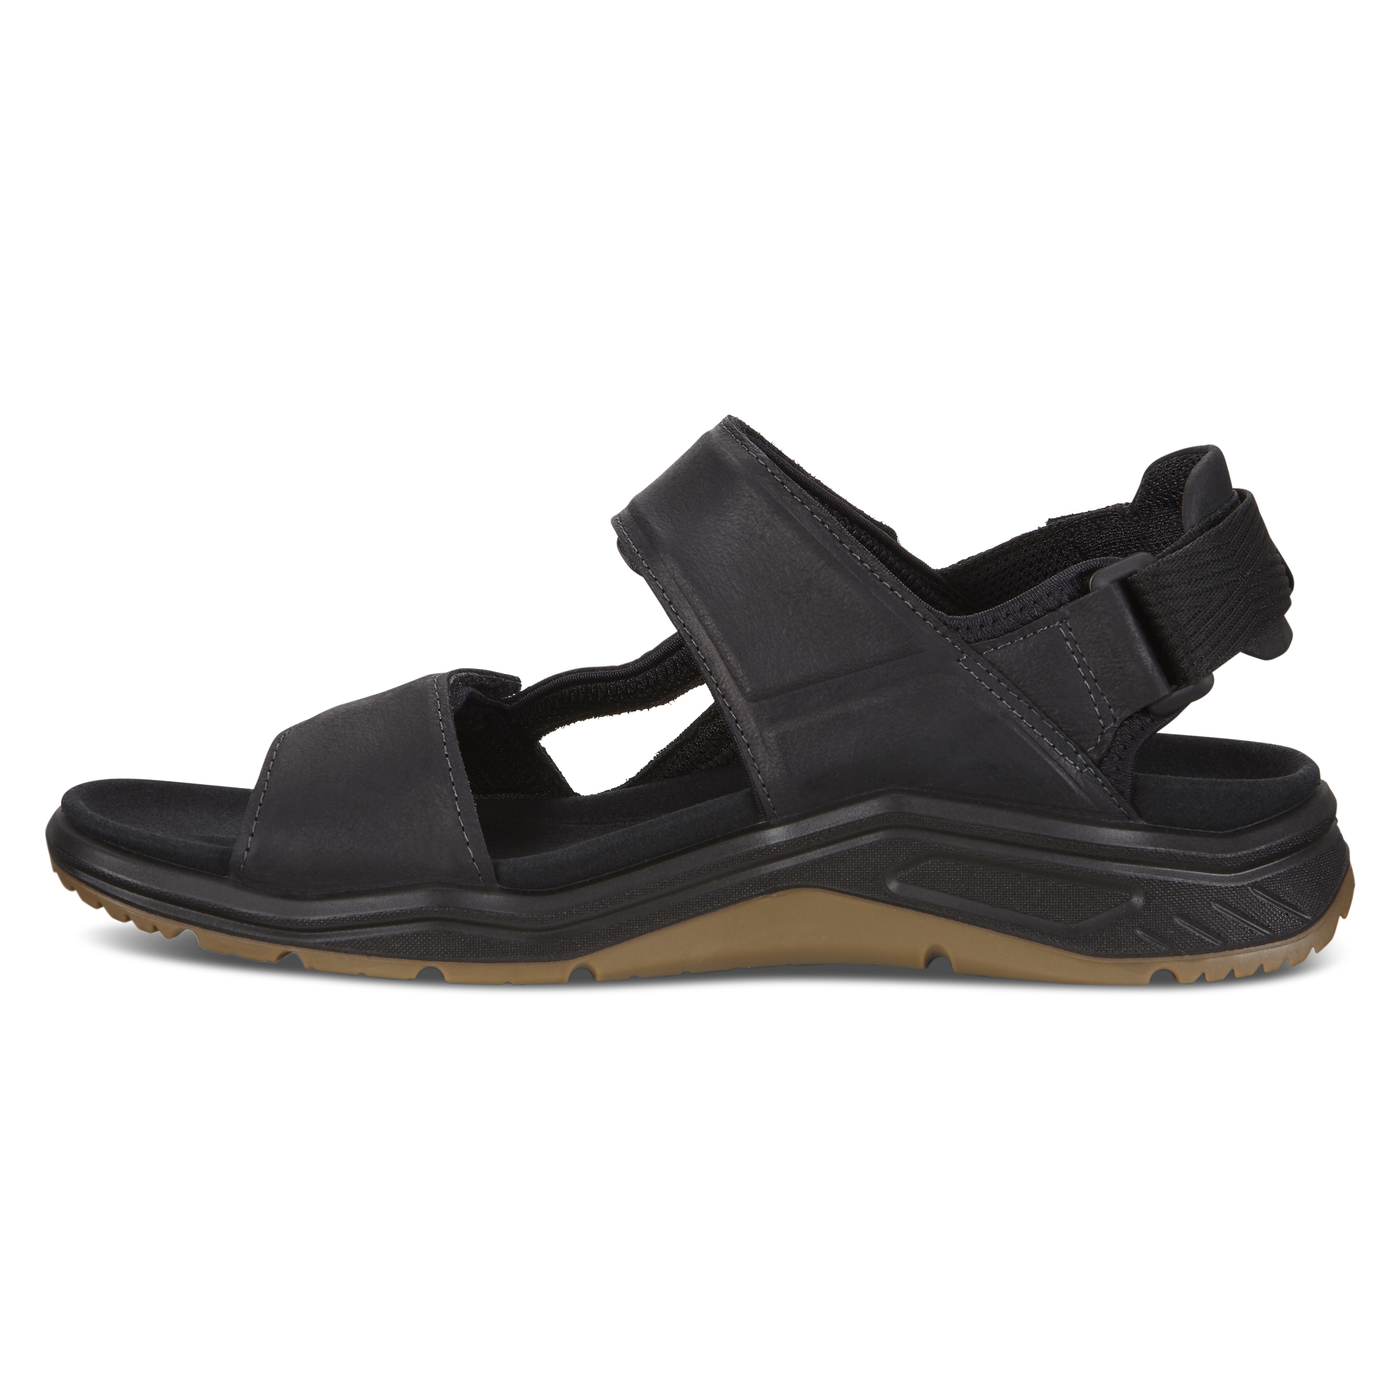 ECCO X-TRINSIC Mens Flat Sandal Leather Strap